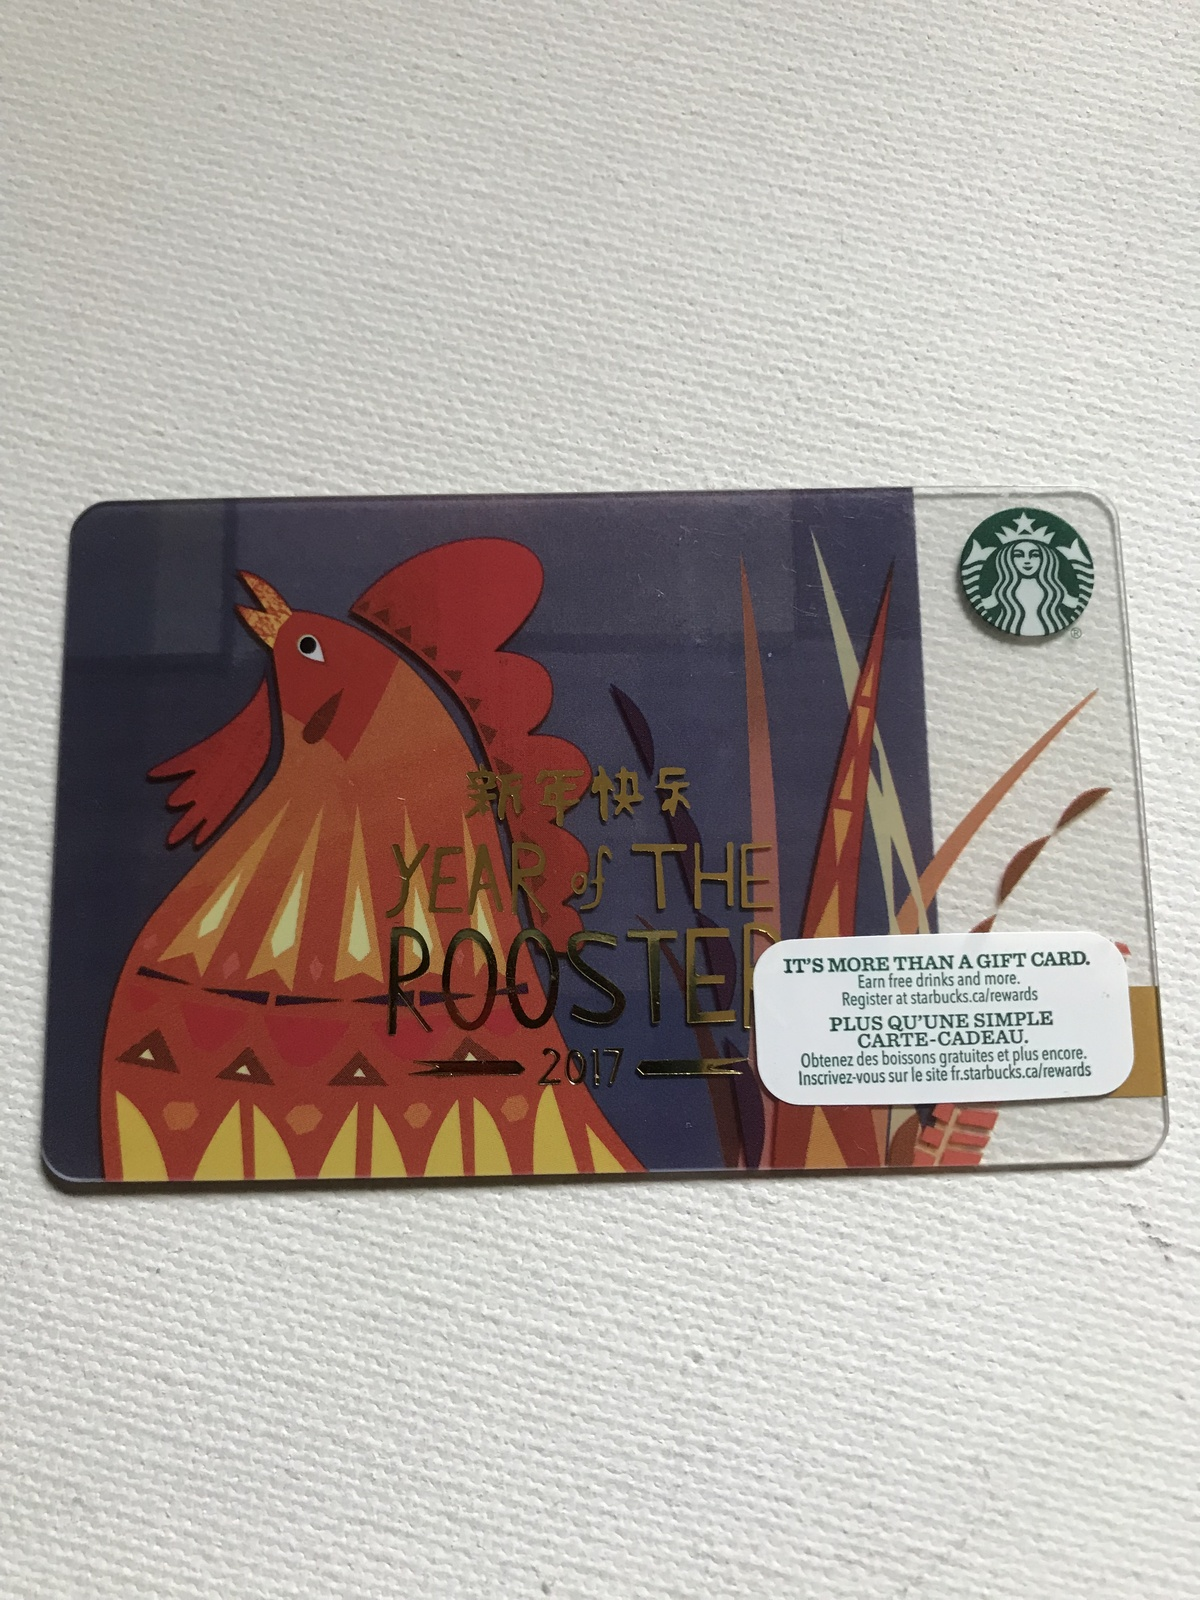 Starbucks Gift Card - NEW - YEAR OF THE ROOSTER 2017 (COPYRIGHT 2016)